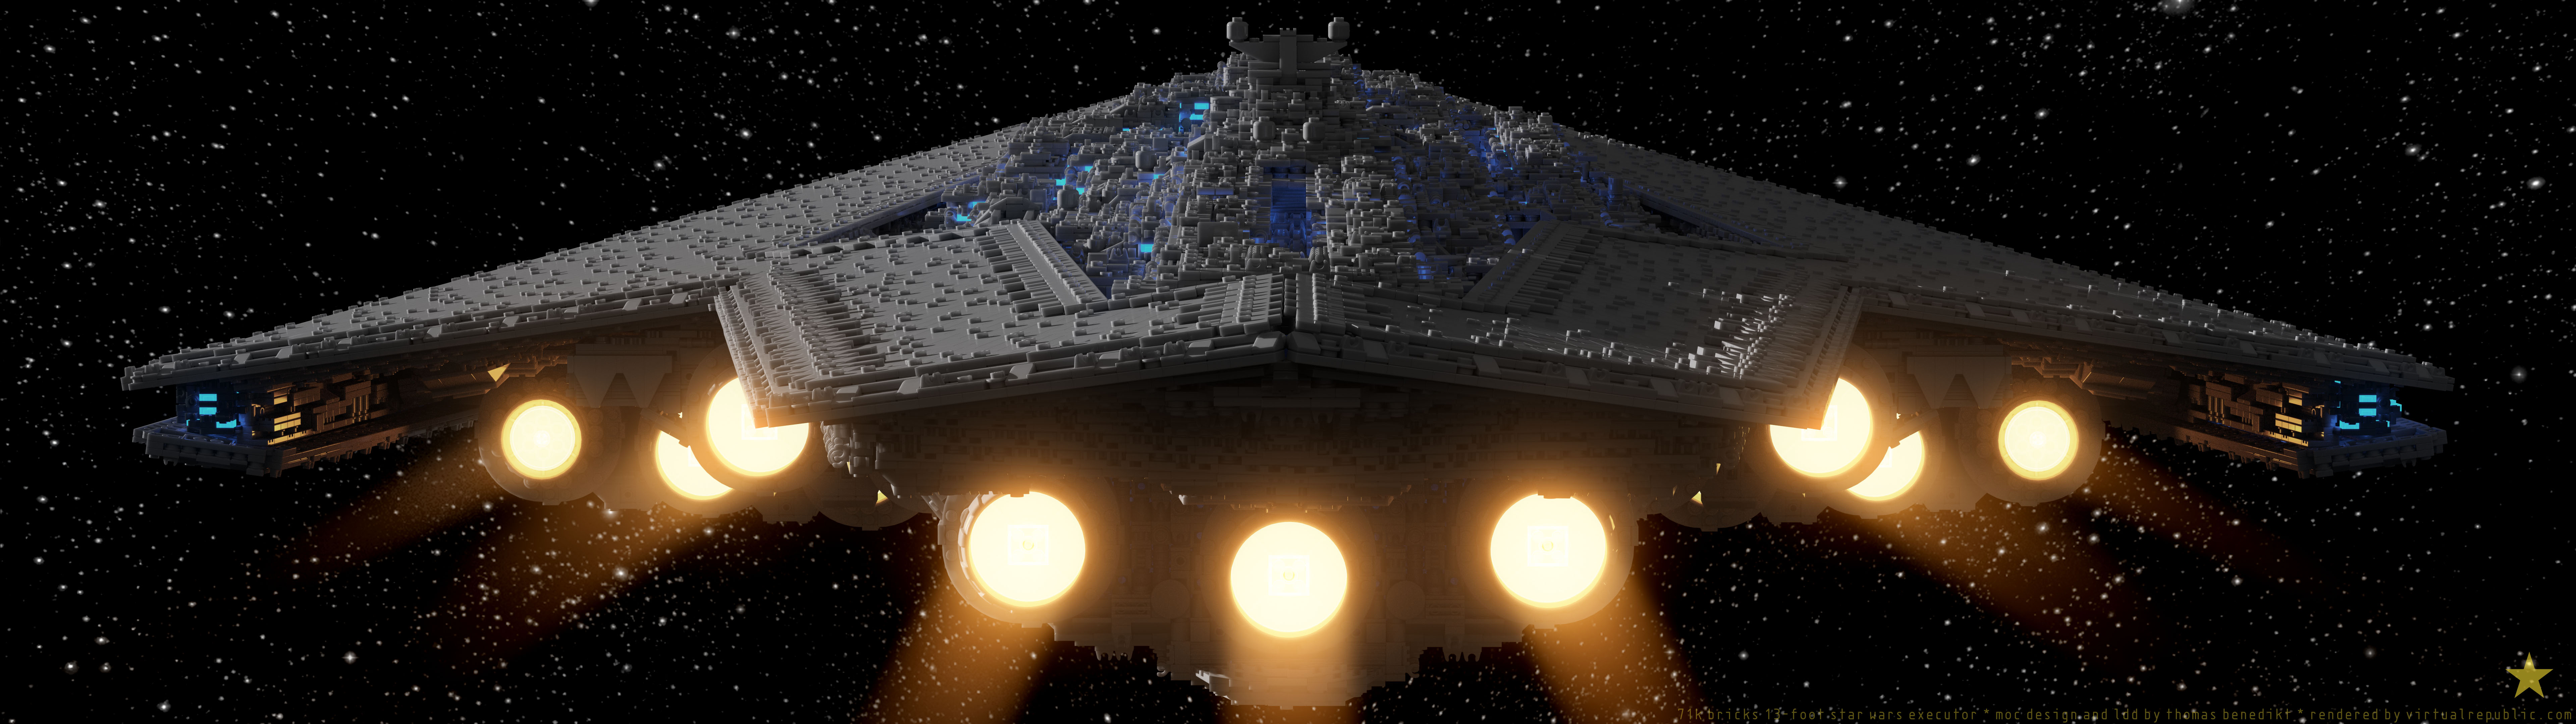 RB0009_Super_Star_Destroyer_v08_CamG_8K_